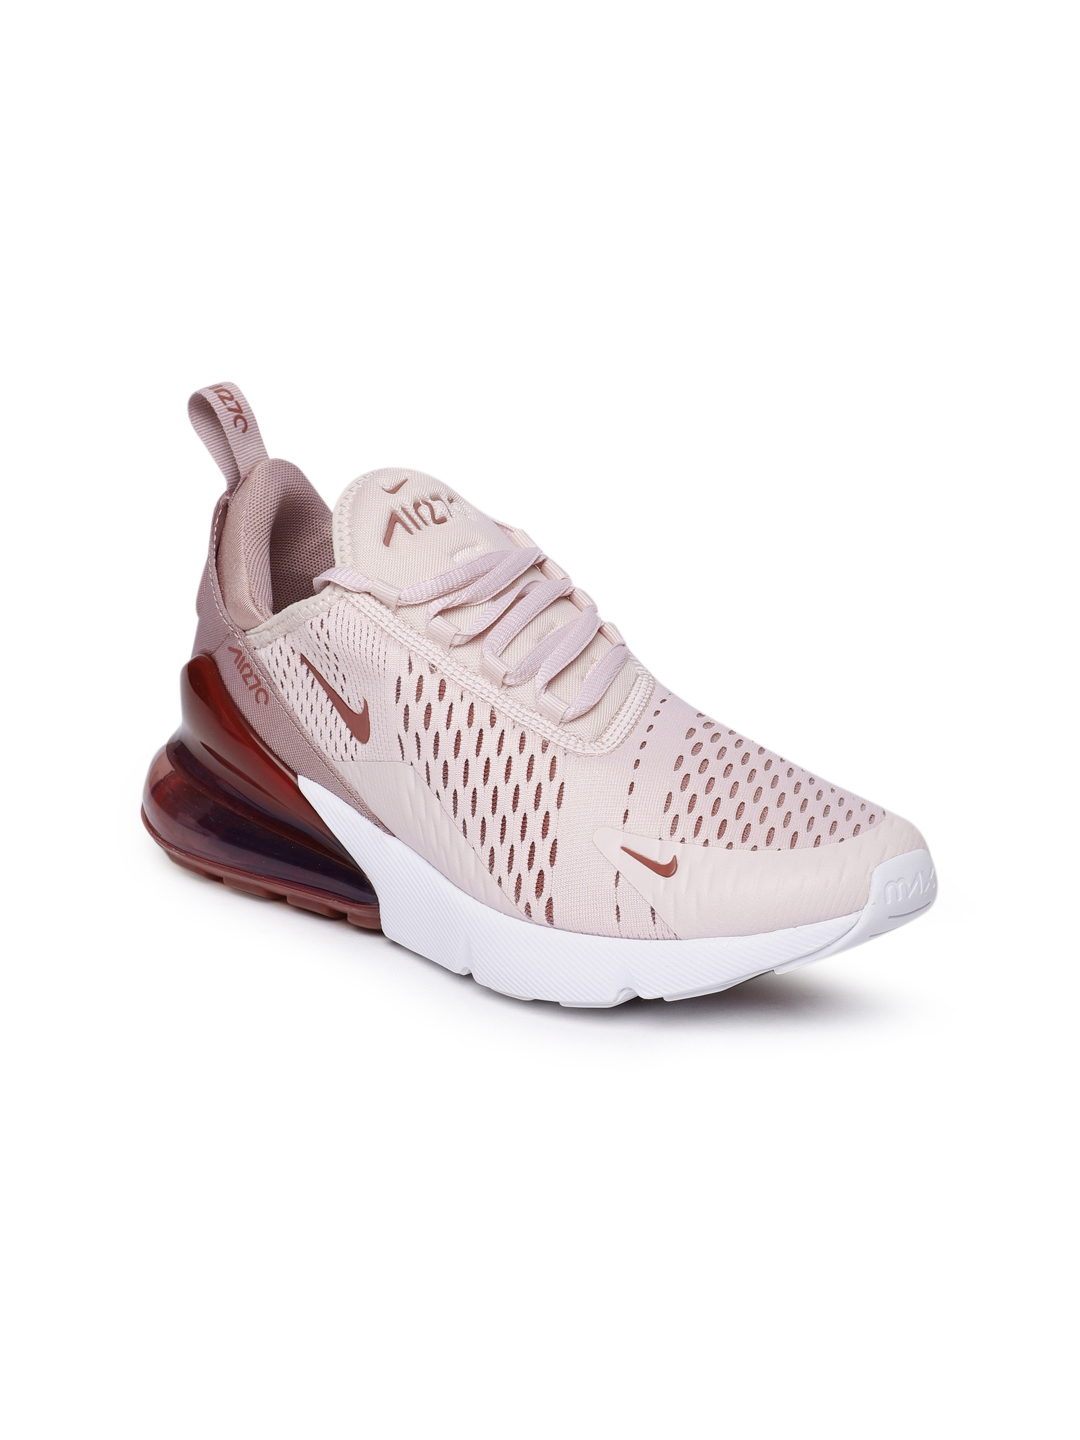 the best attitude db7eb f60eb Nike Women Pink & Burgundy Air Max 270 Sneakers